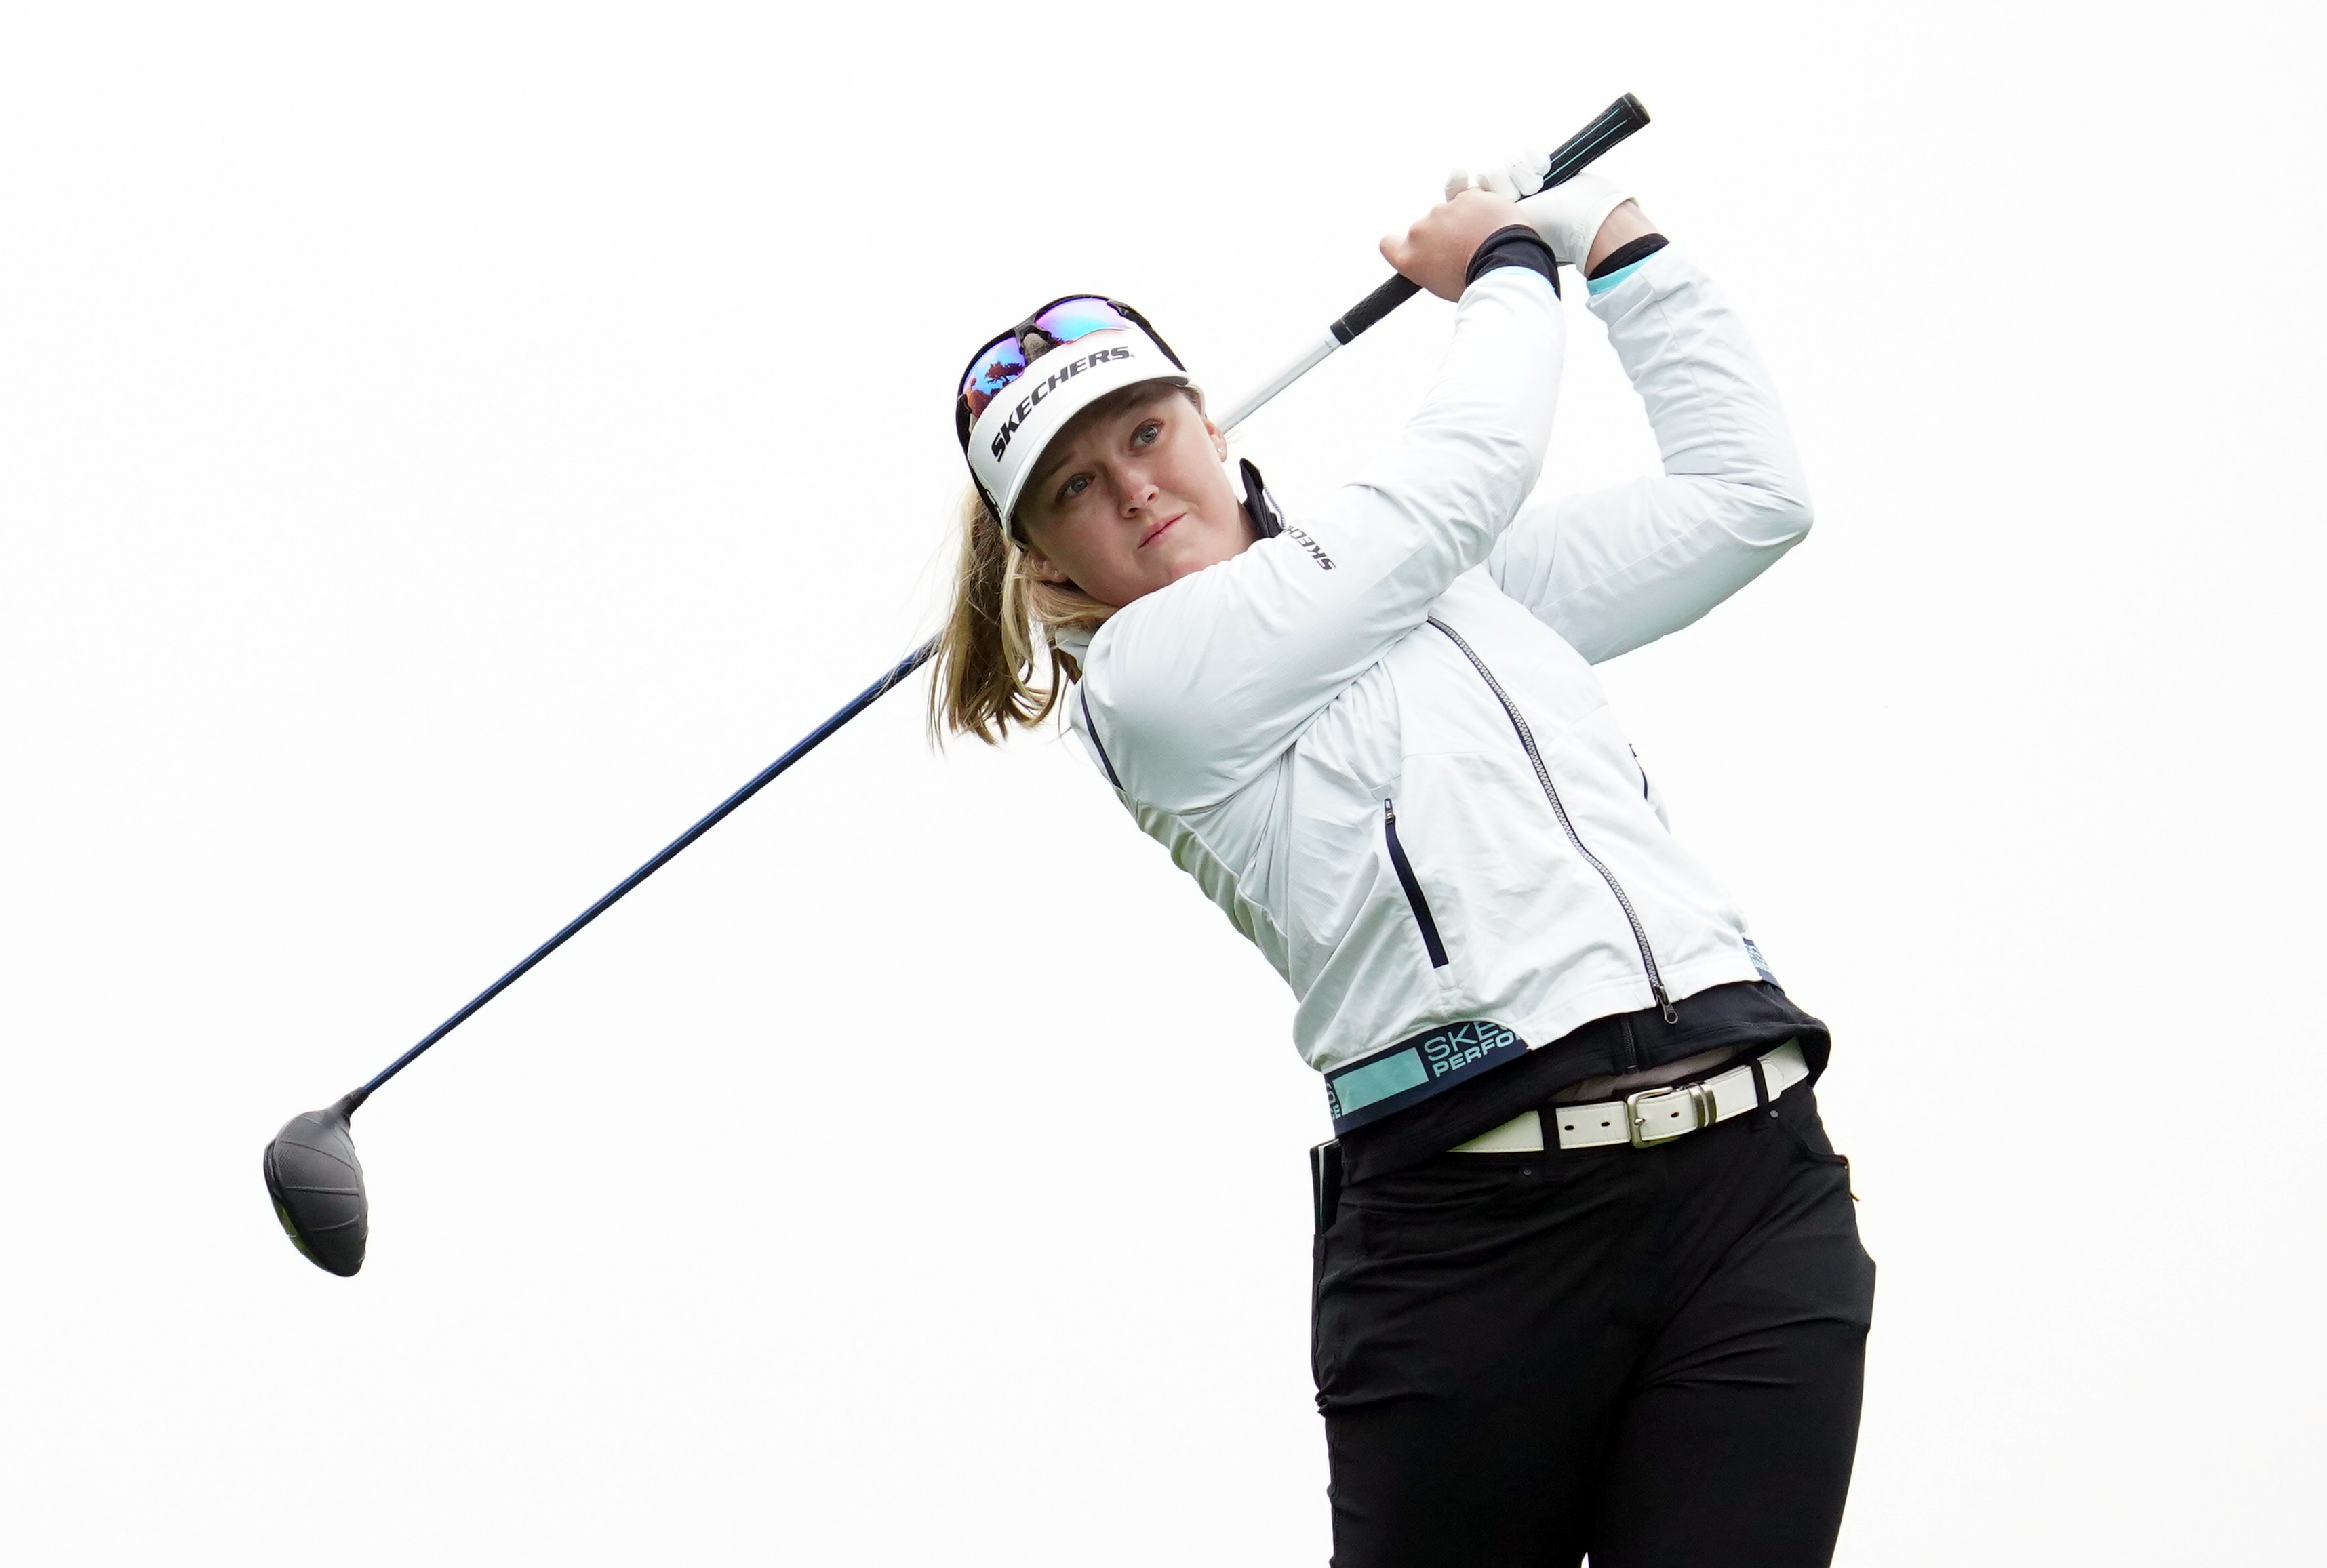 Jun 4, 2021; San Francisco, California, USA; Brooke Henderson plays her shot from the 11th tee during the second round of the U.S. Women's Open golf tournament at The Olympic Club. Mandatory Credit: Kyle Terada-USA TODAY Sports